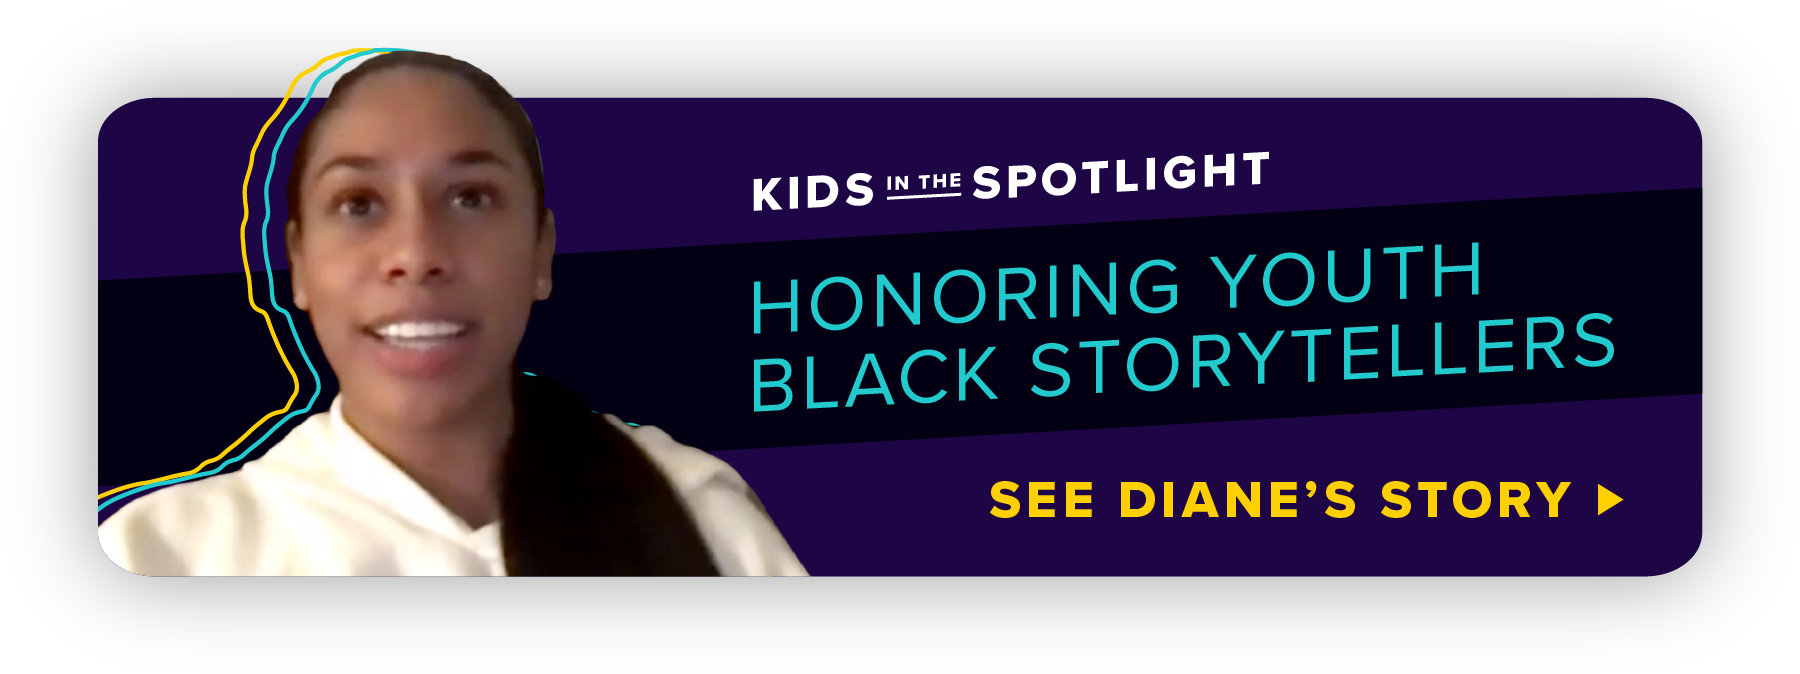 Celebrating Youth Black Storytellers